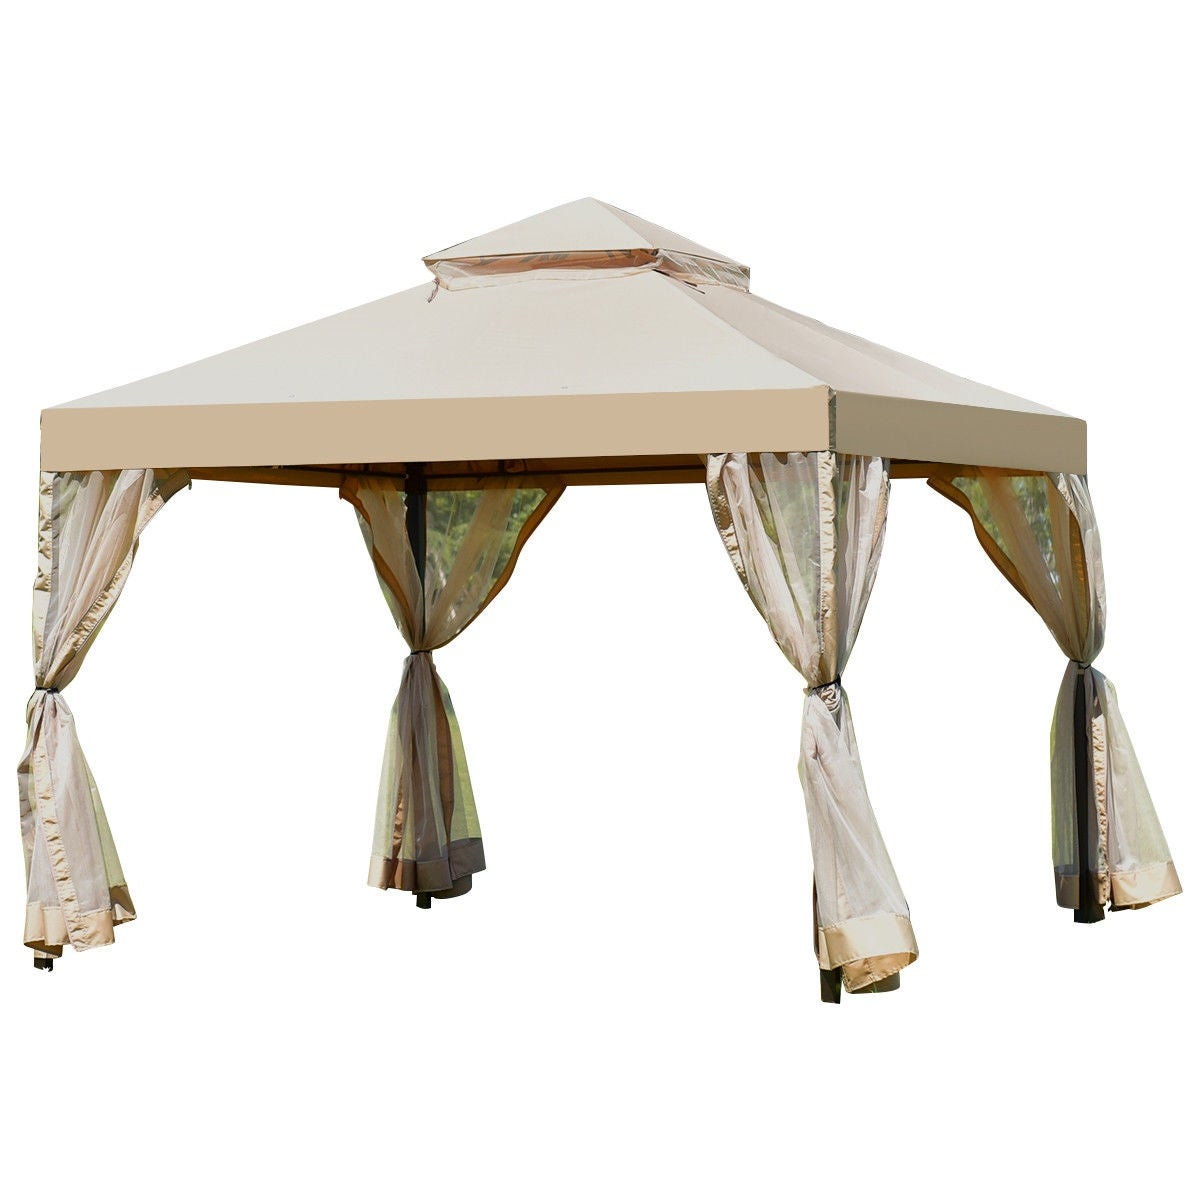 Costway Outdoor 2-Tier 10u0027x10u0027 Gazebo Canopy Shelter Awning Tent Patio Garden Brown - Free Shipping Today - Overstock.com - 24427186  sc 1 st  Overstock.com : brown canopy tent - memphite.com